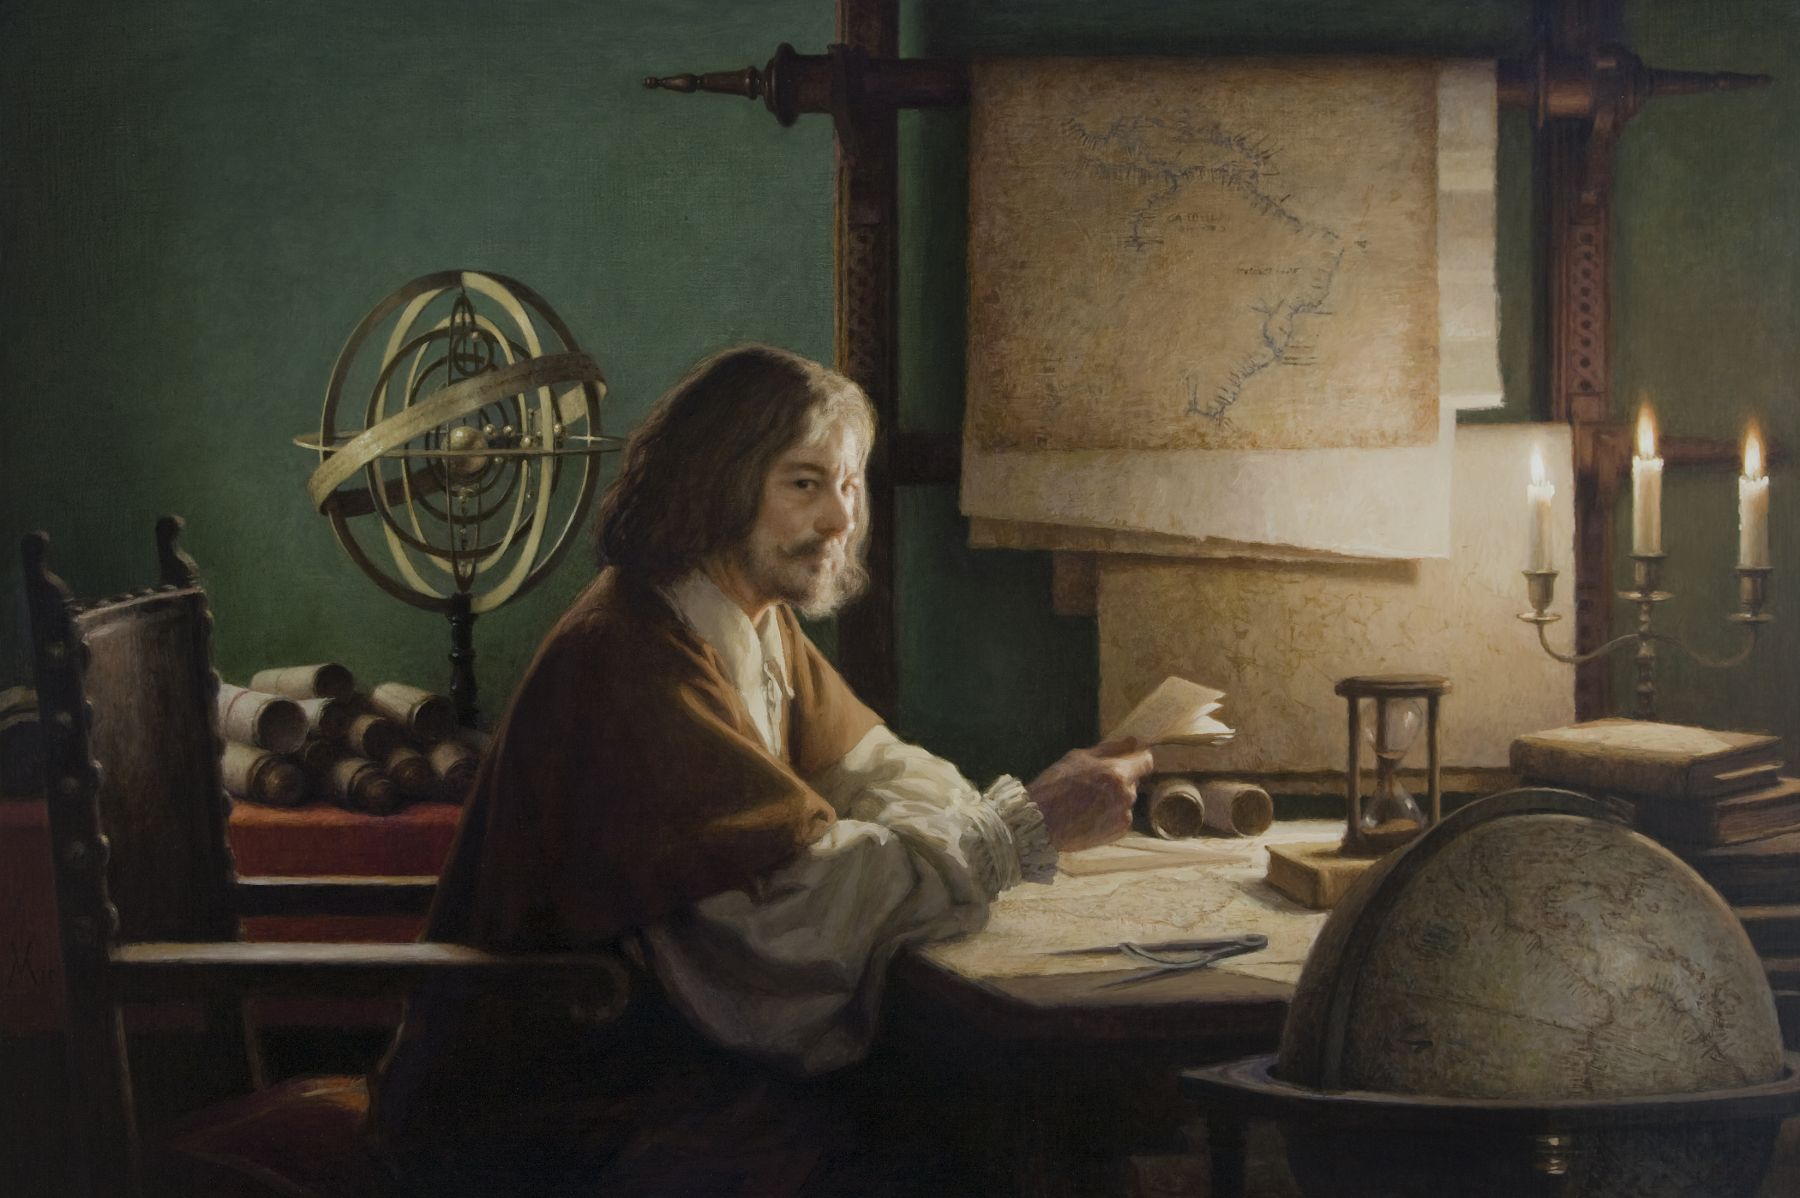 guillermo munoz vera, The Cartographer (SOLD), 2010, oil on canvas on panel, 39 3/8 x 59 inches